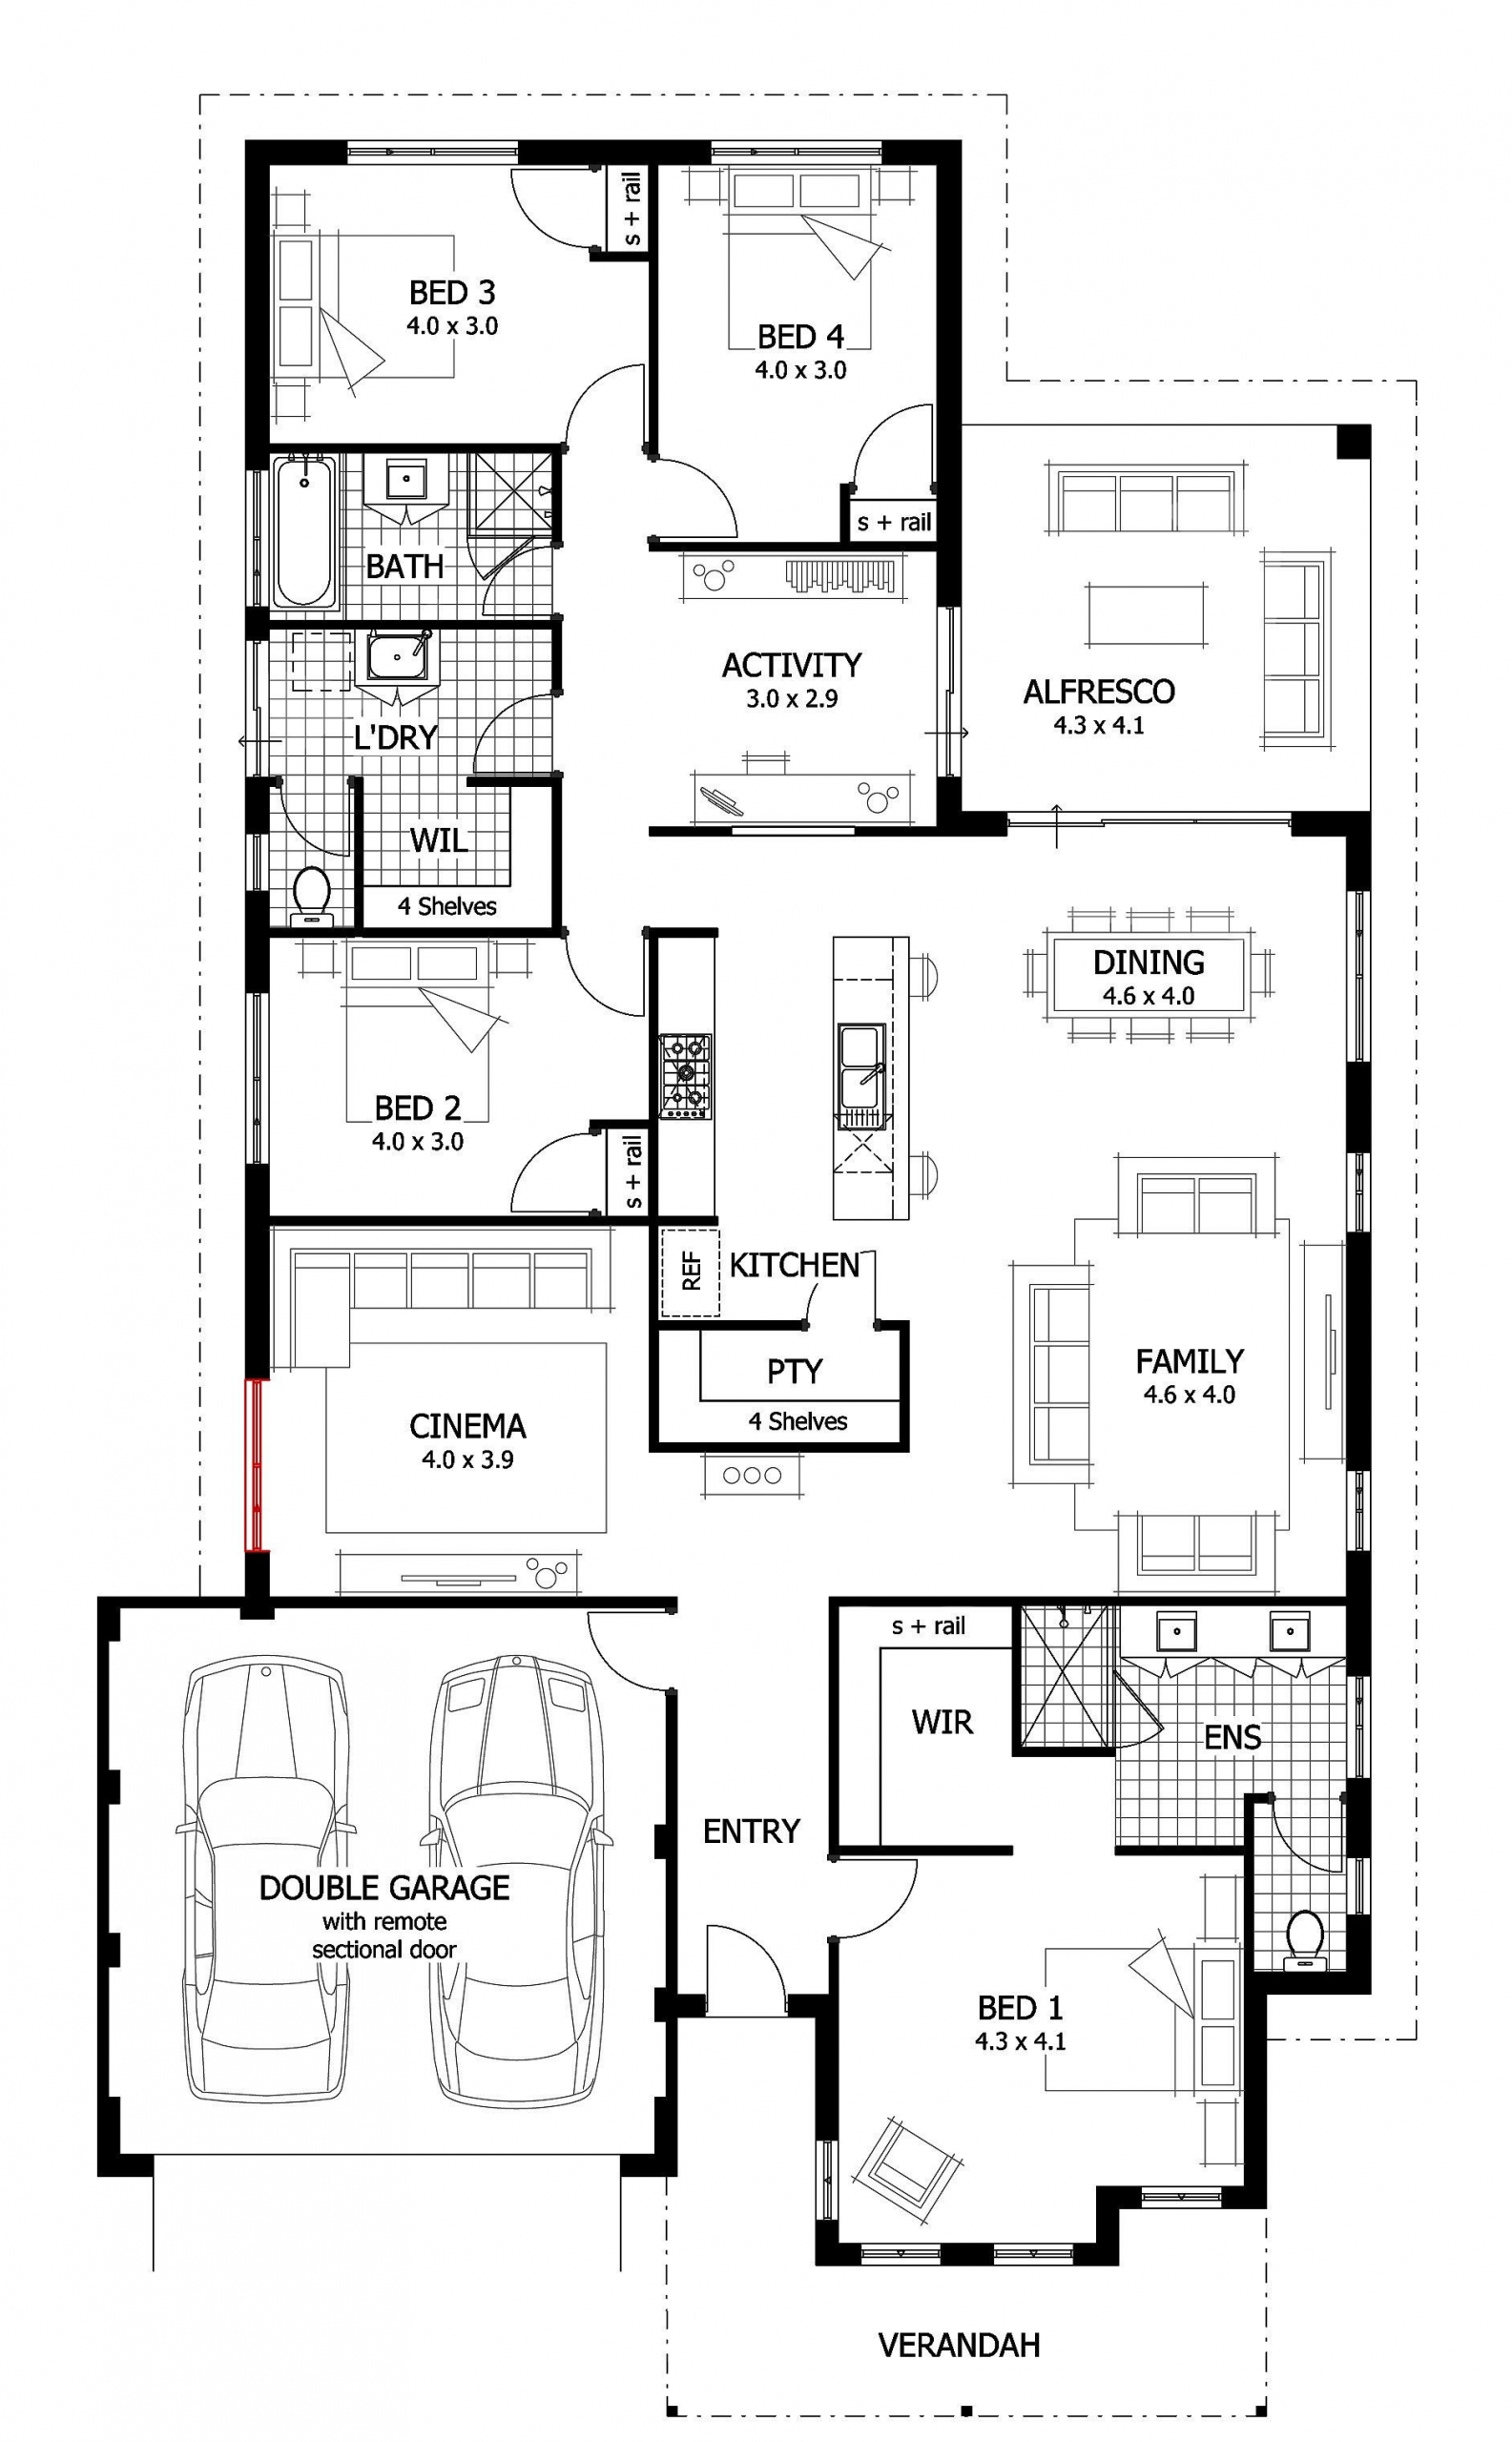 Inspirational 4 Bedroom Ranch House Plans House Plans Pictures Bedrooms Houseplans B House Plans With Pictures Ranch House Plans Mid Century Modern House Plans